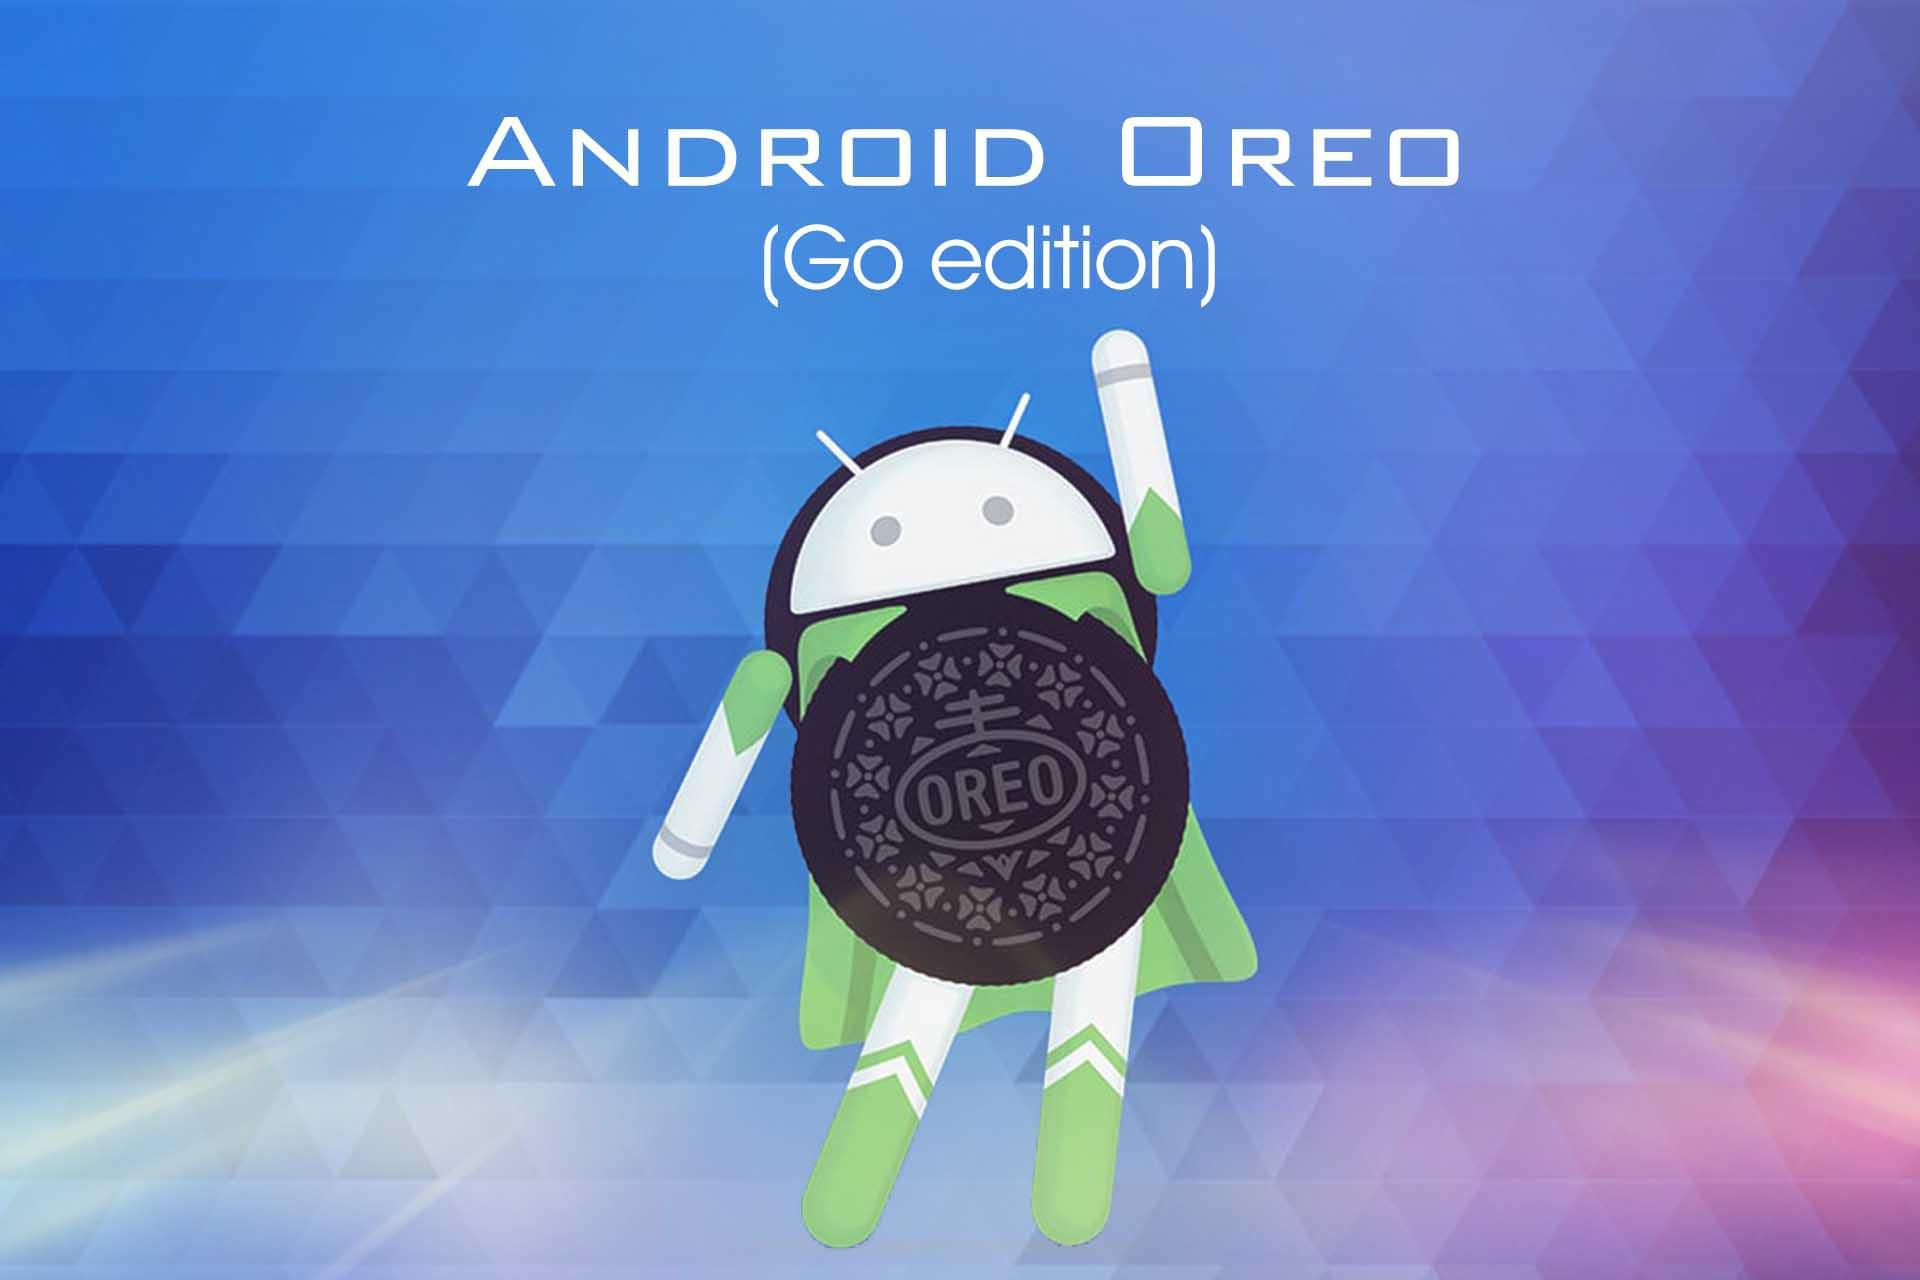 Android oreo go edition(1)